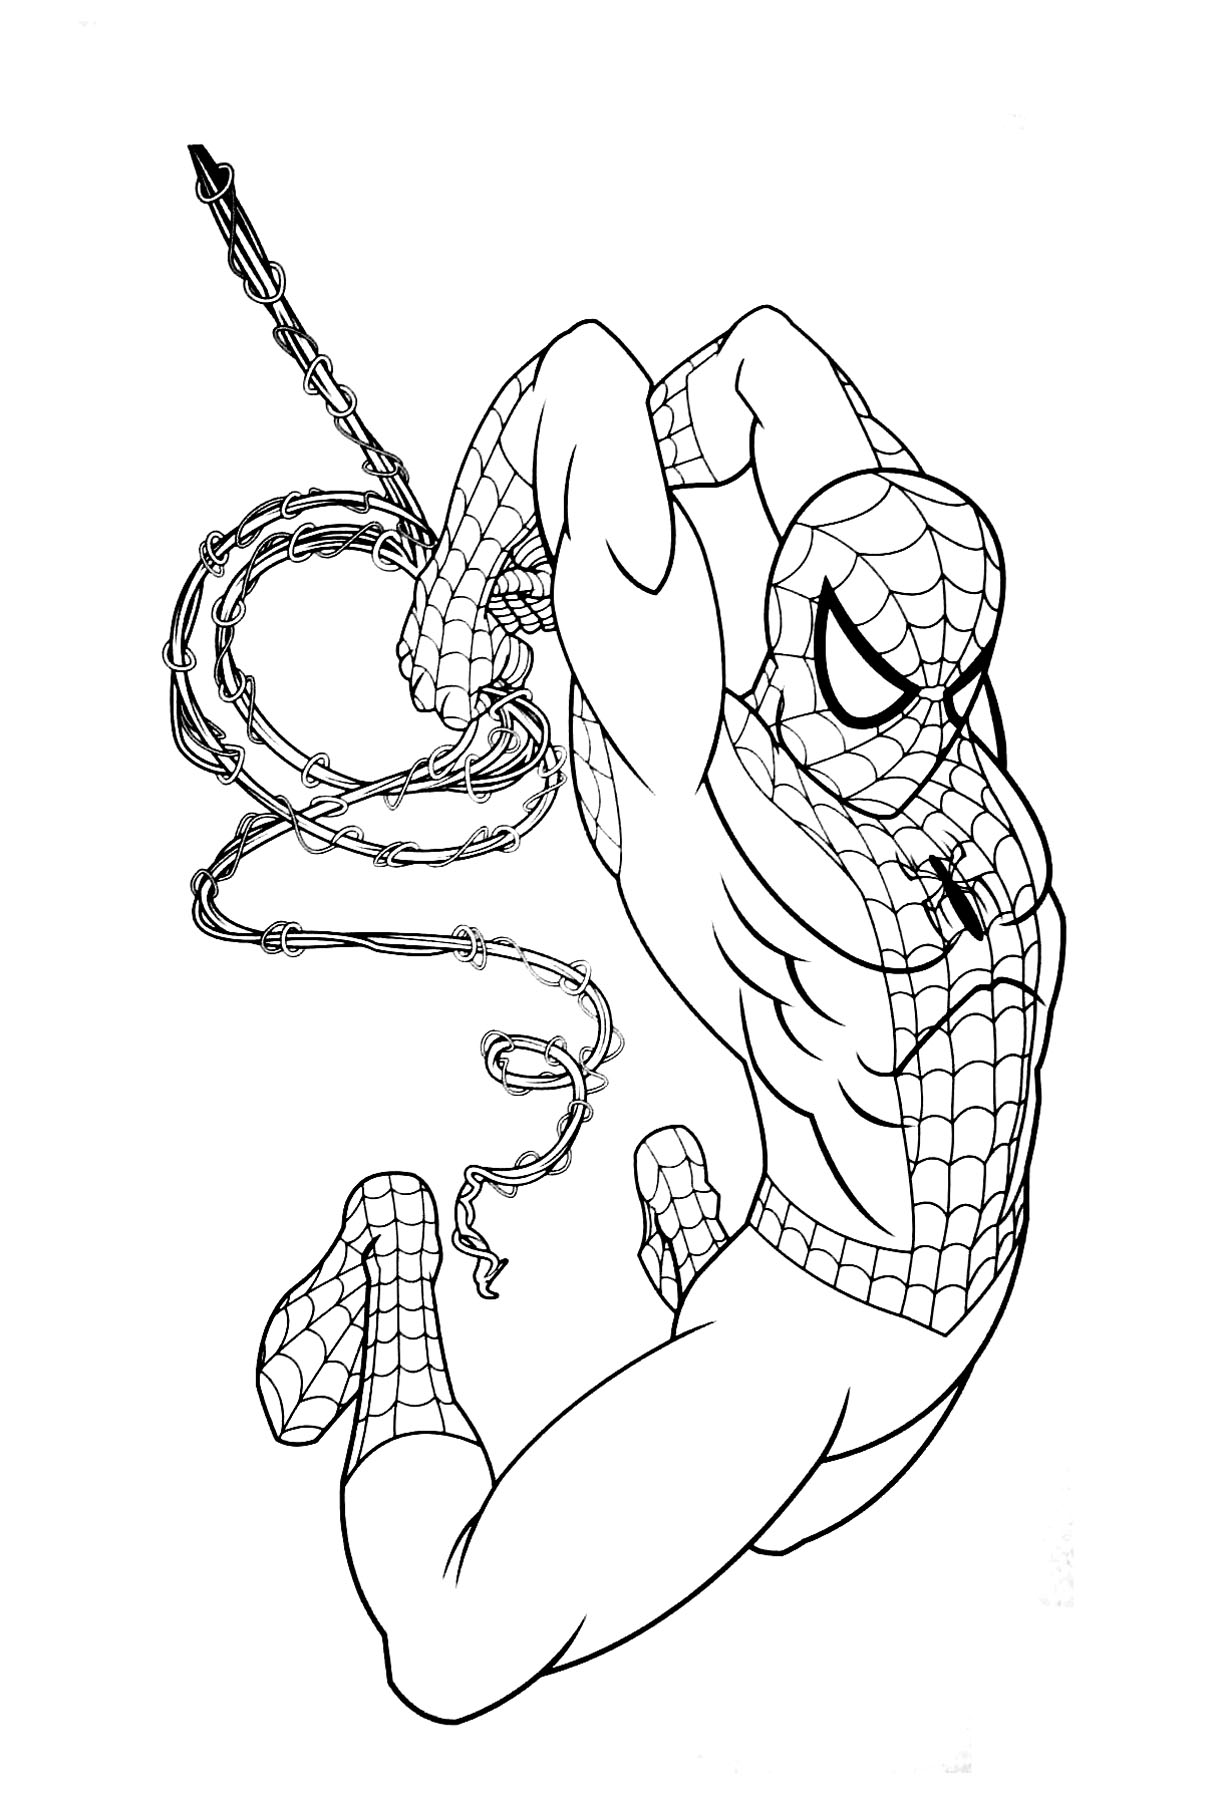 Spiderman gratuit 12 coloriage spiderman coloriages - Dessin spiderman facile ...